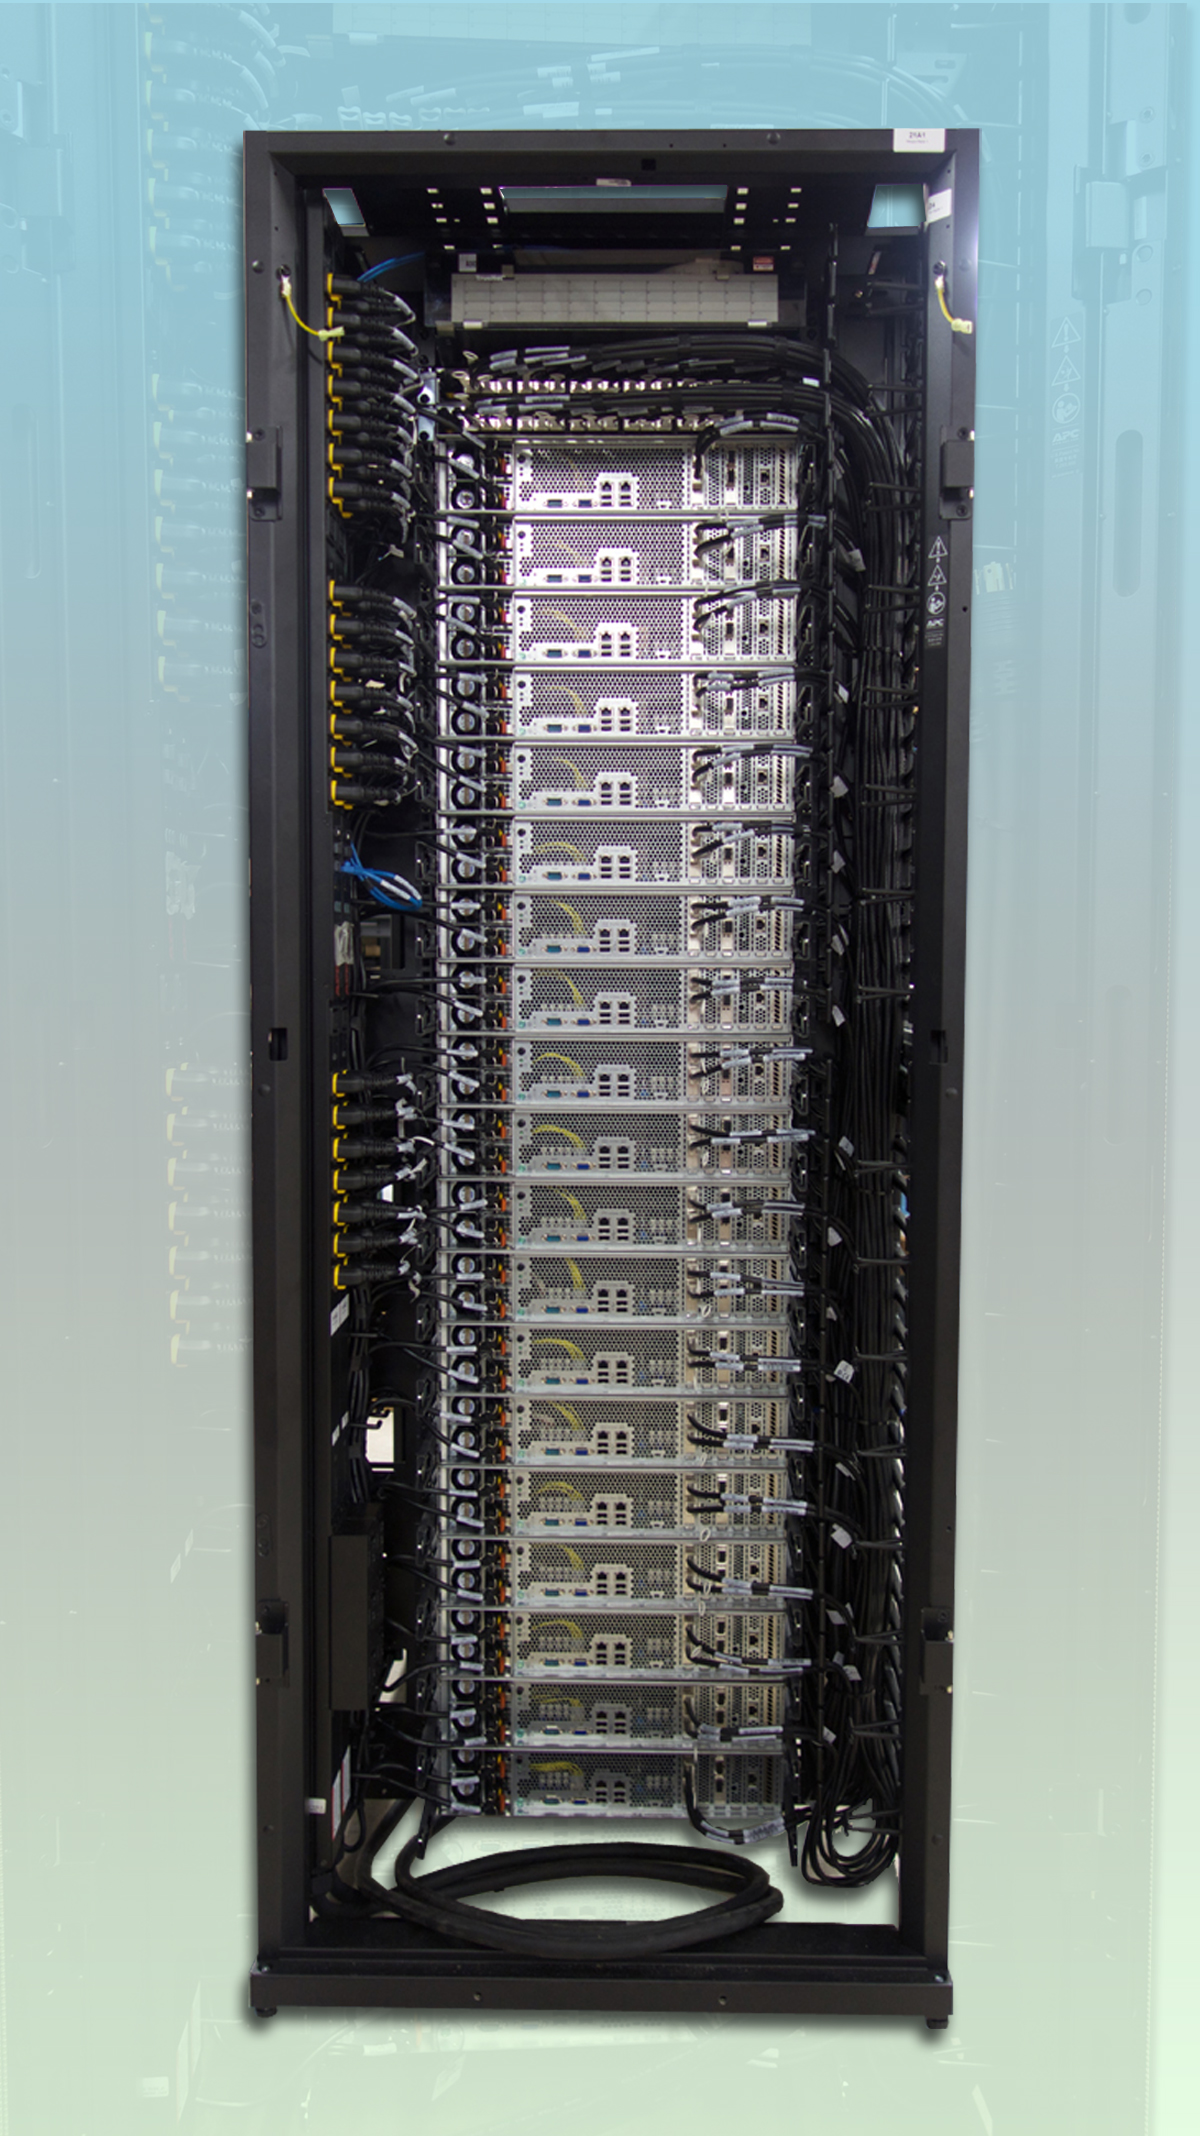 Rack with Networking